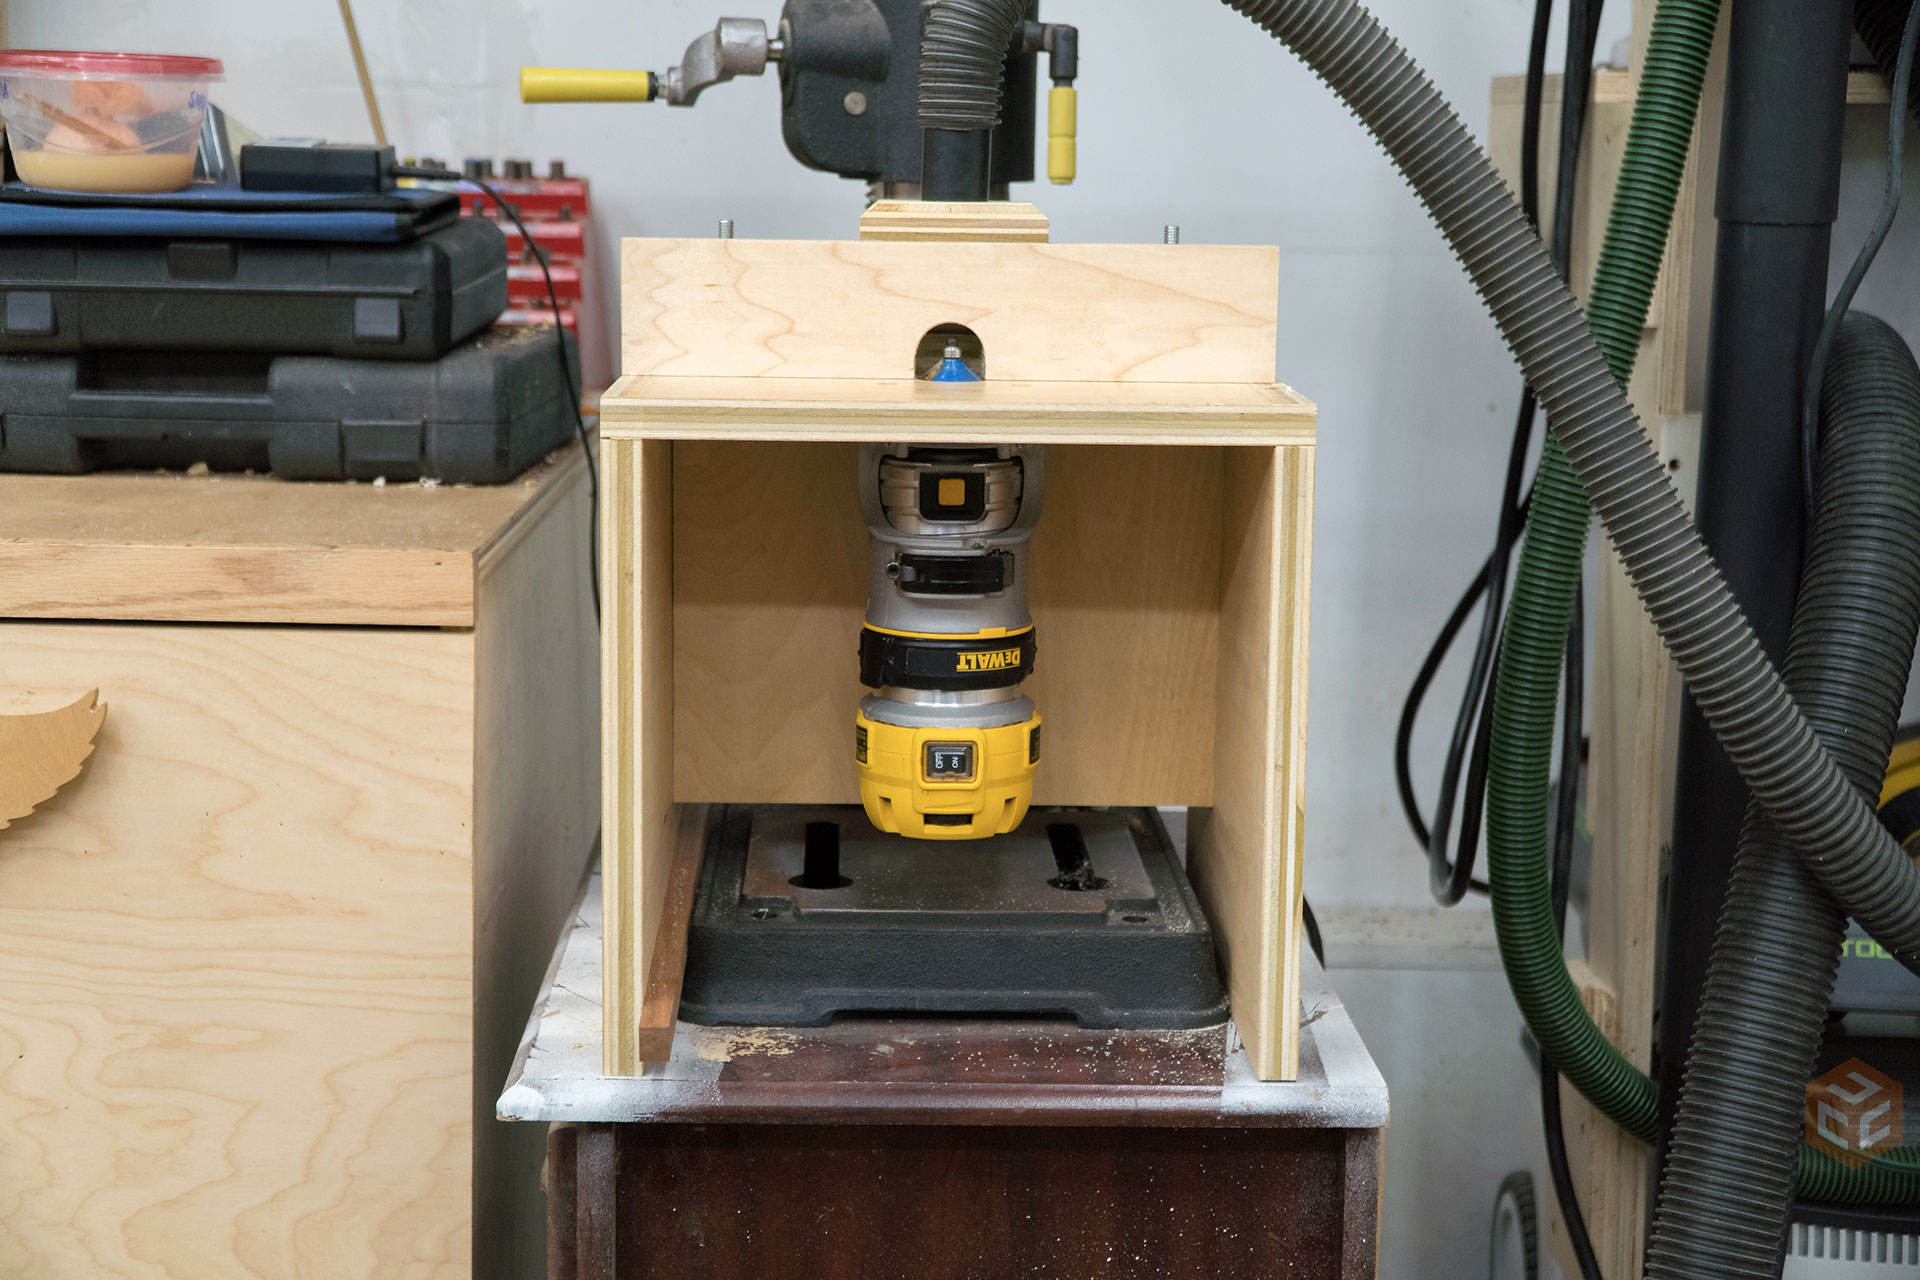 Benchtop router table jays custom creations benchtop router table 23 greentooth Choice Image